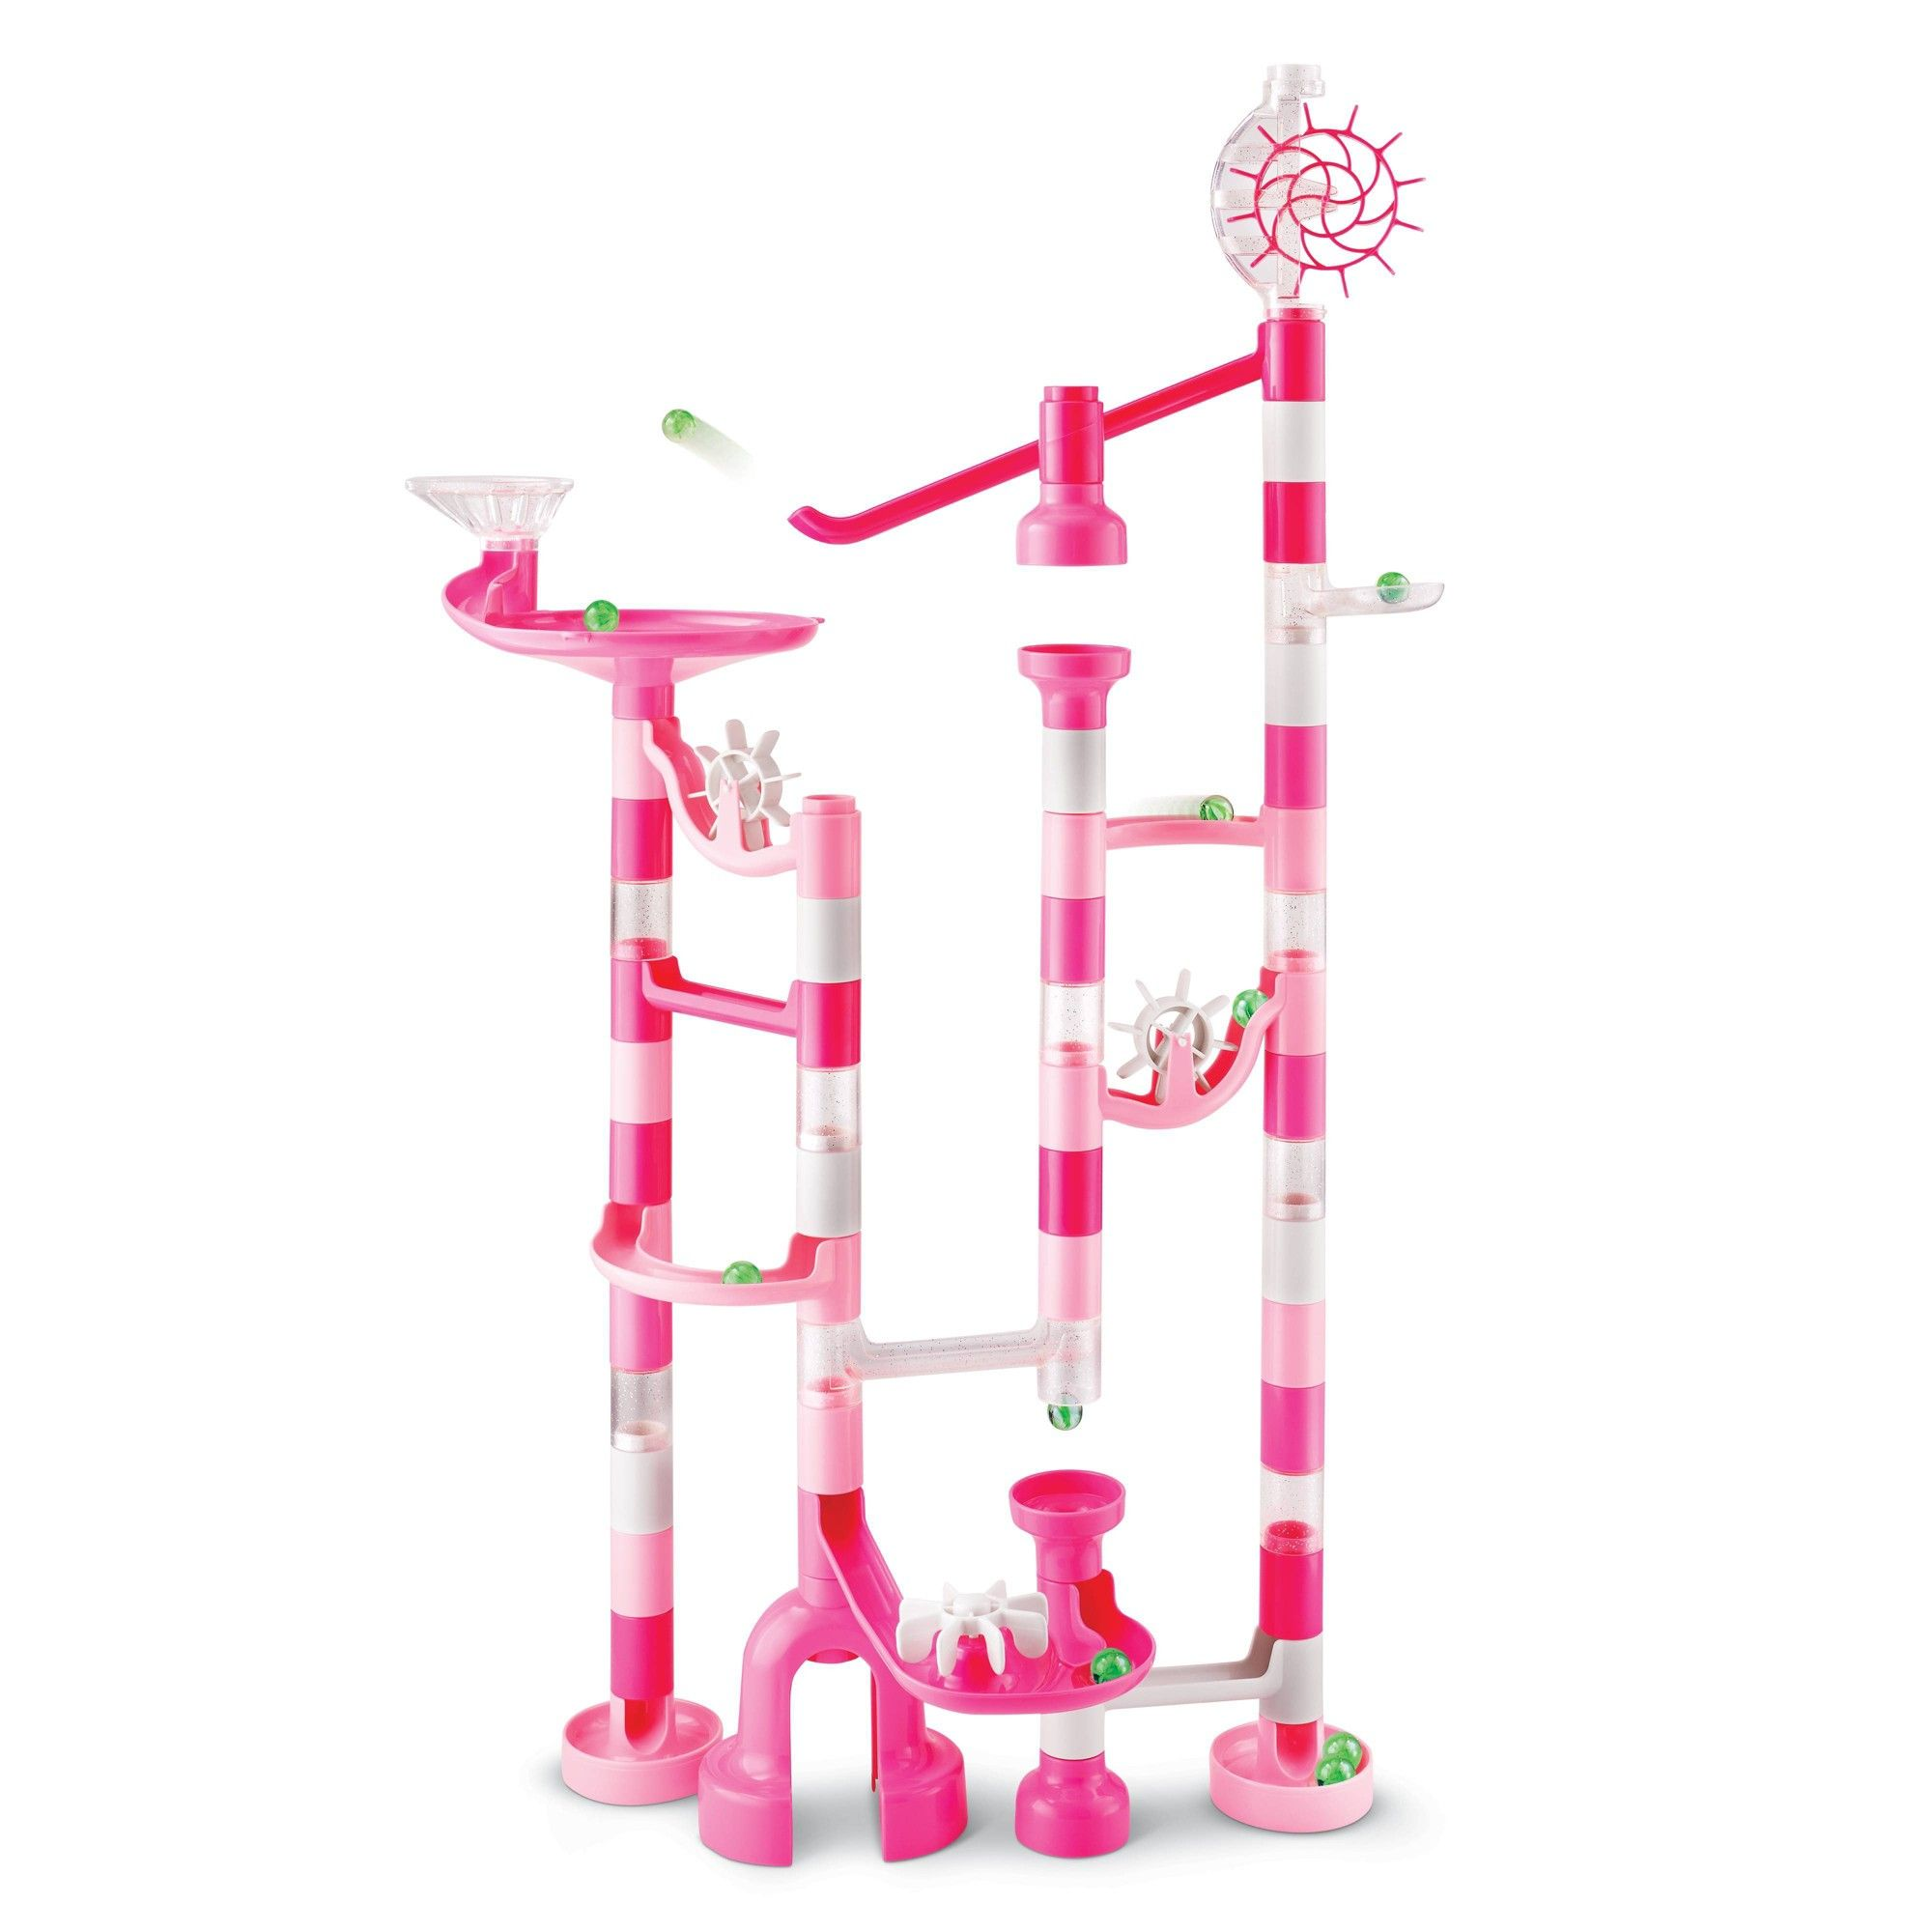 MindWare Sparkle Marble Run